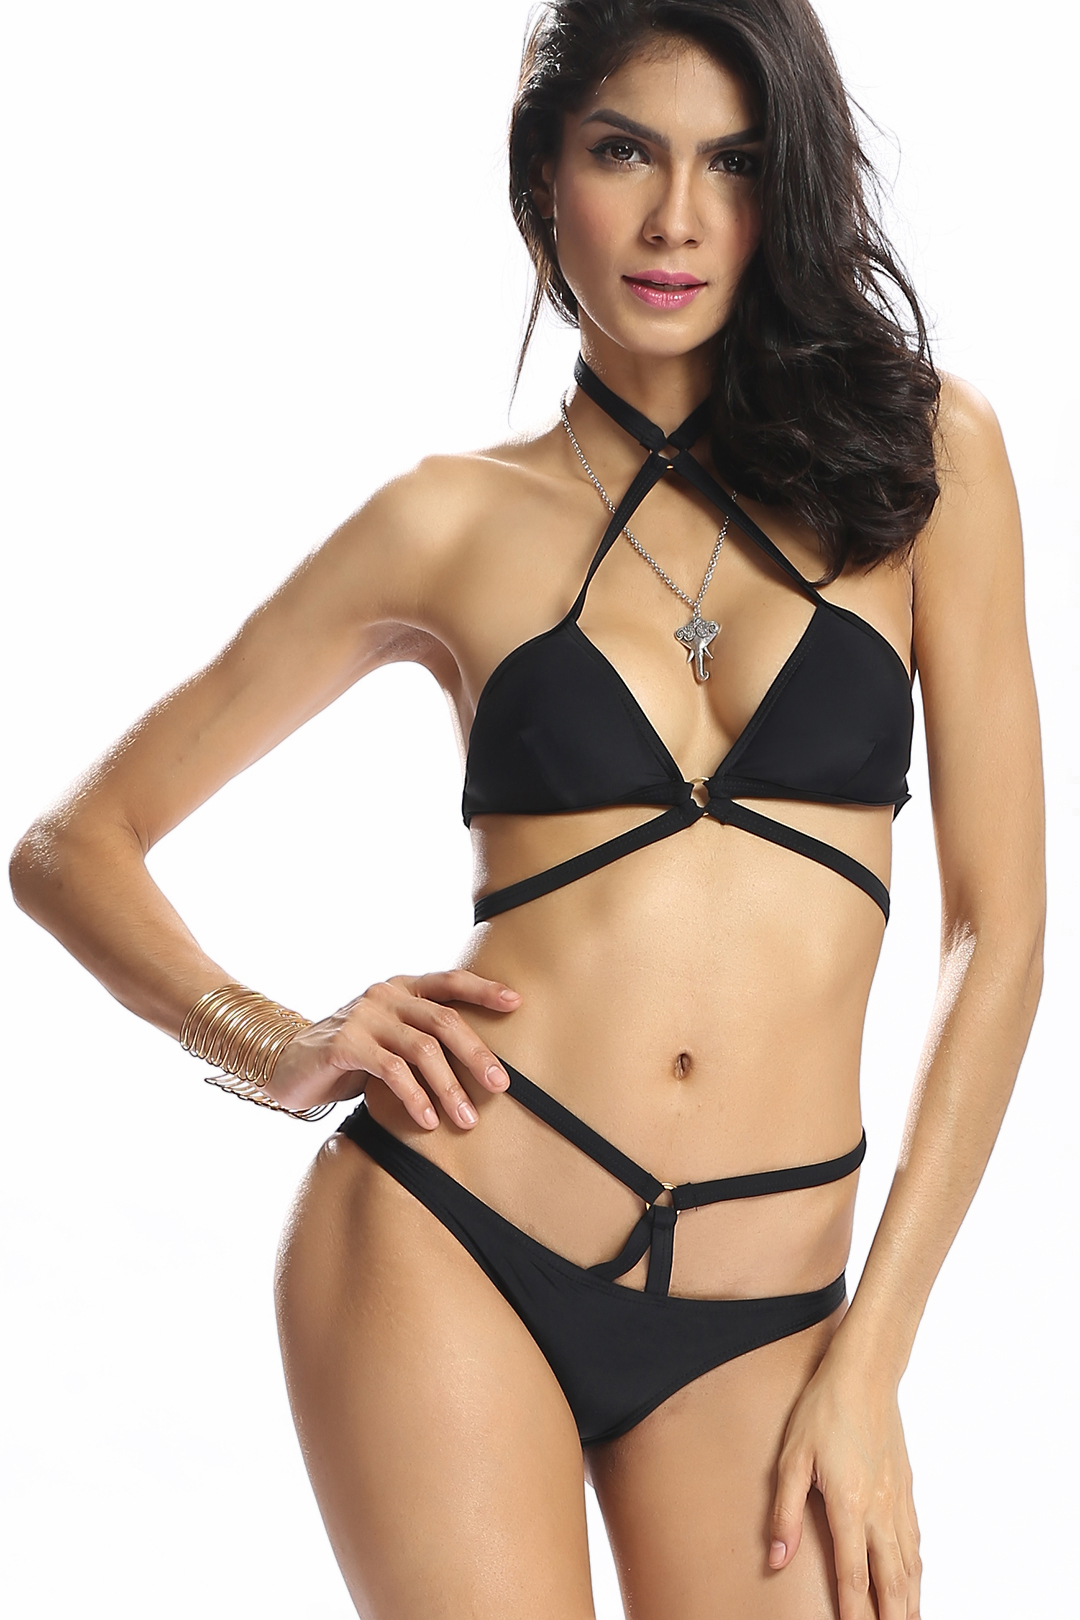 Black Halter Strappy Bikini Set the daily village perfect canada white skirt turquoise barely there tops wear hollywood miss picture universe panache bikini